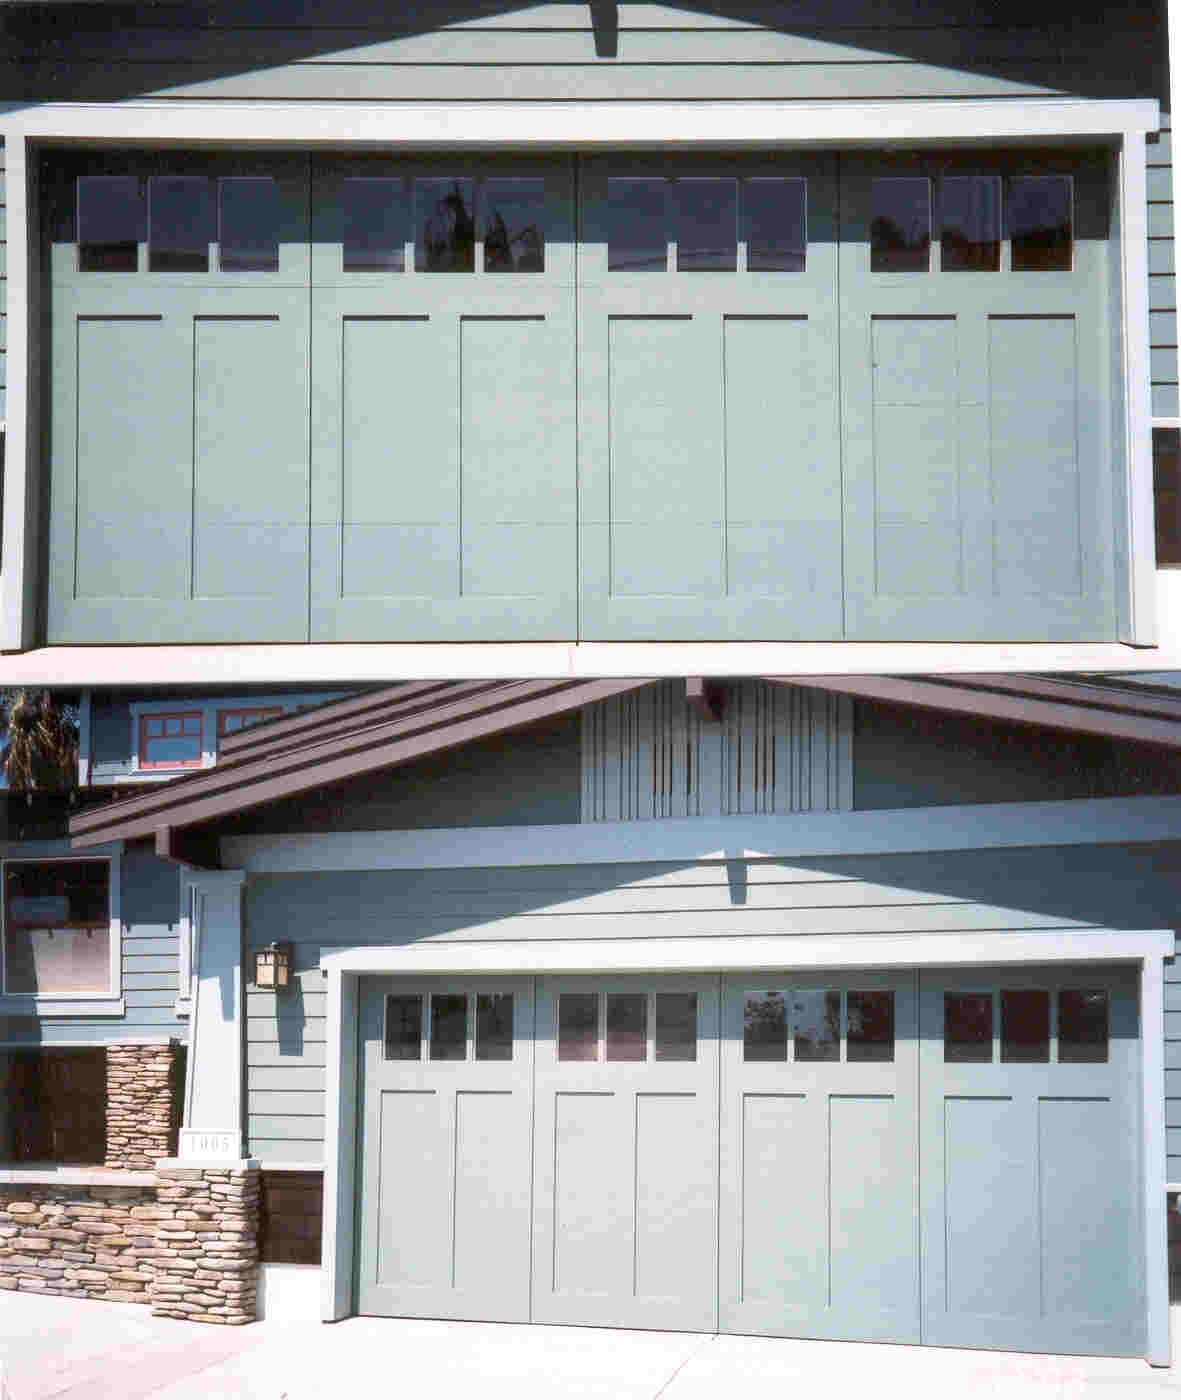 1400 #51667A BEACH AREA GARAGE DOOR wallpaper Garage Doors In My Area 37451181